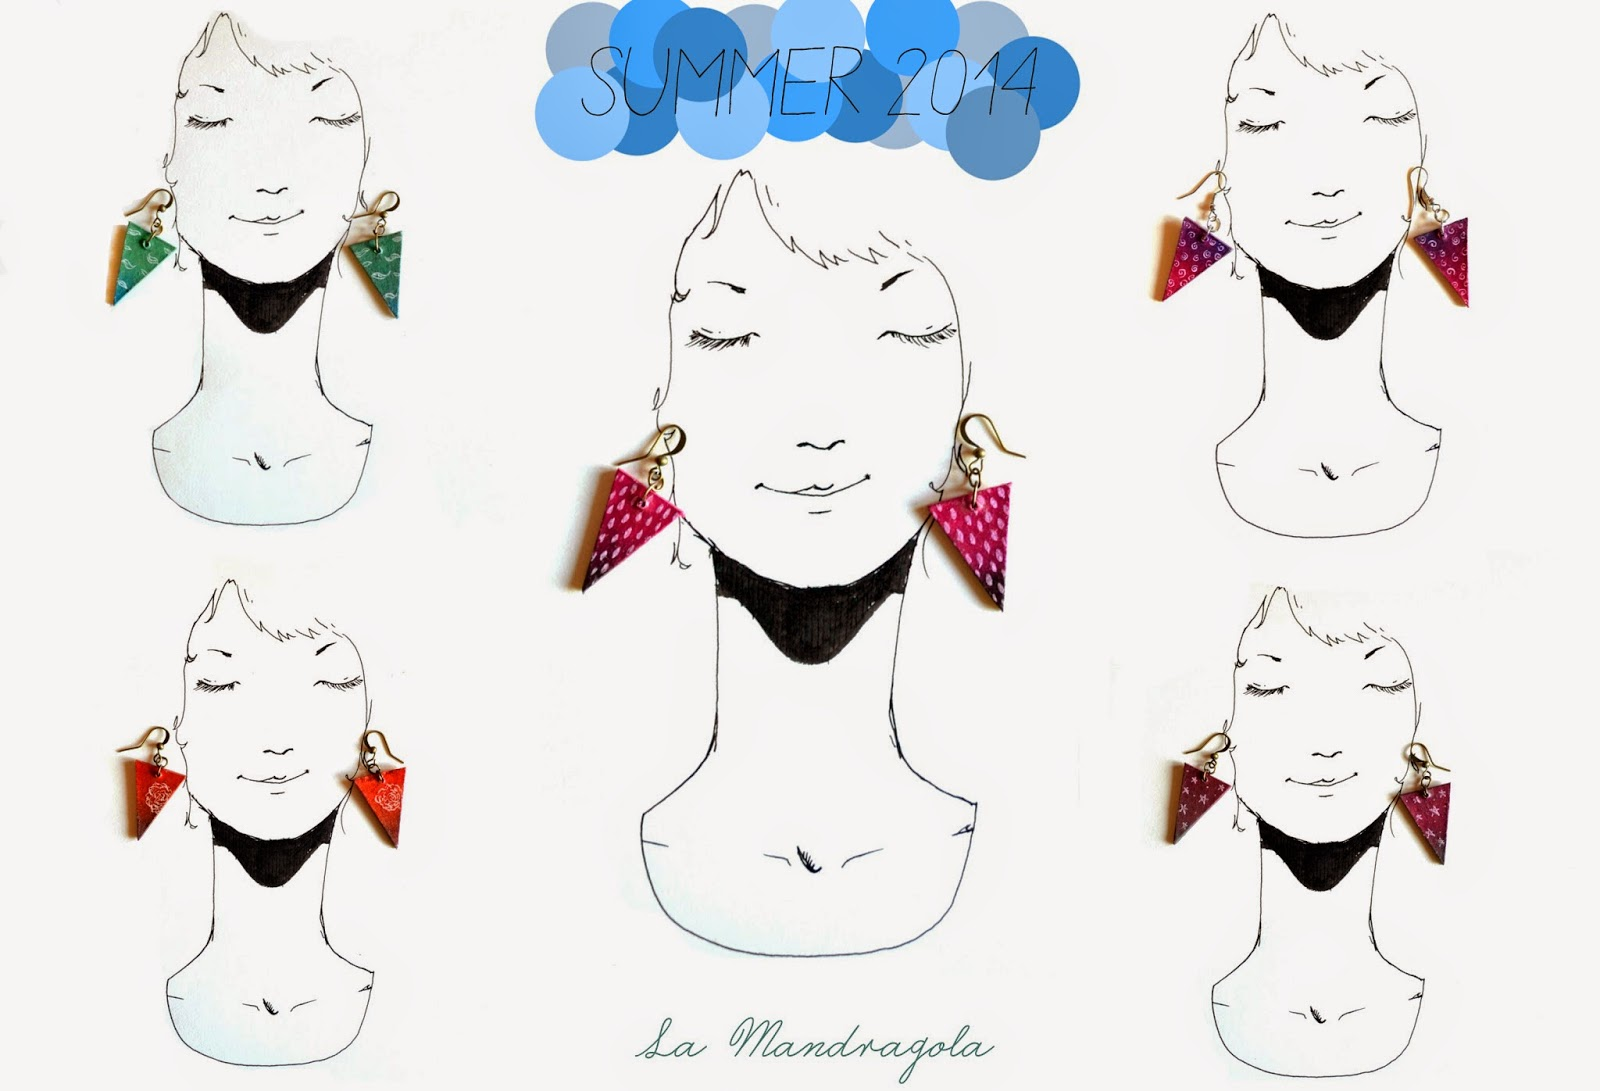 la mandragola-summer-earrings-colorful-handmade-finnboard-inked